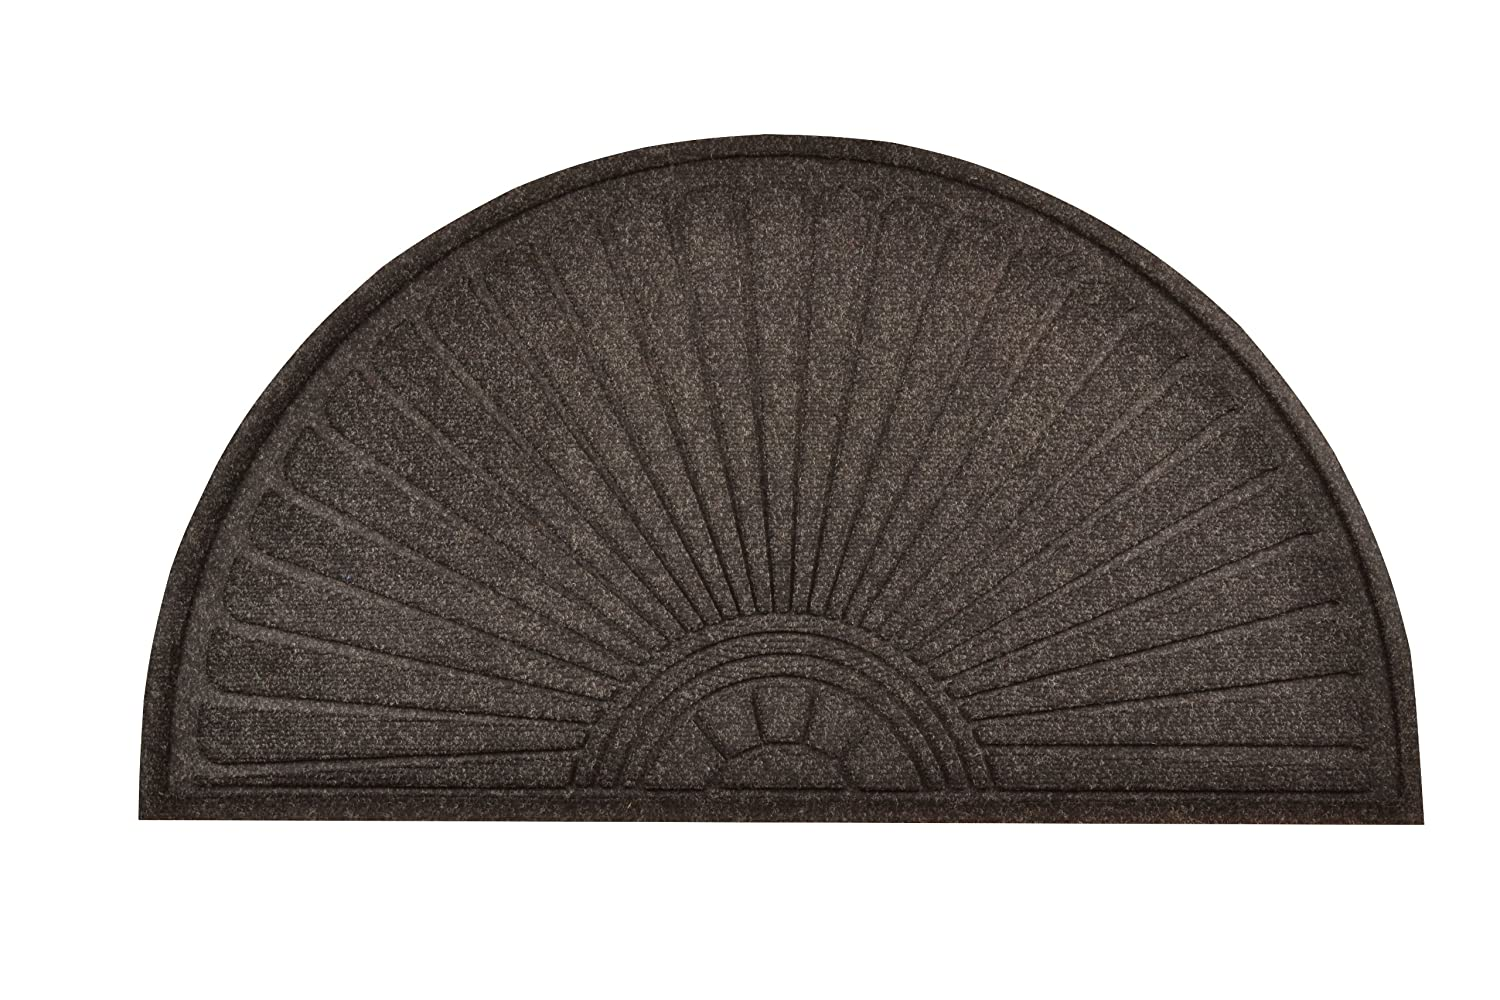 7. No Trax Designs 169F0024CH Guzzler Sunburst Door Mat